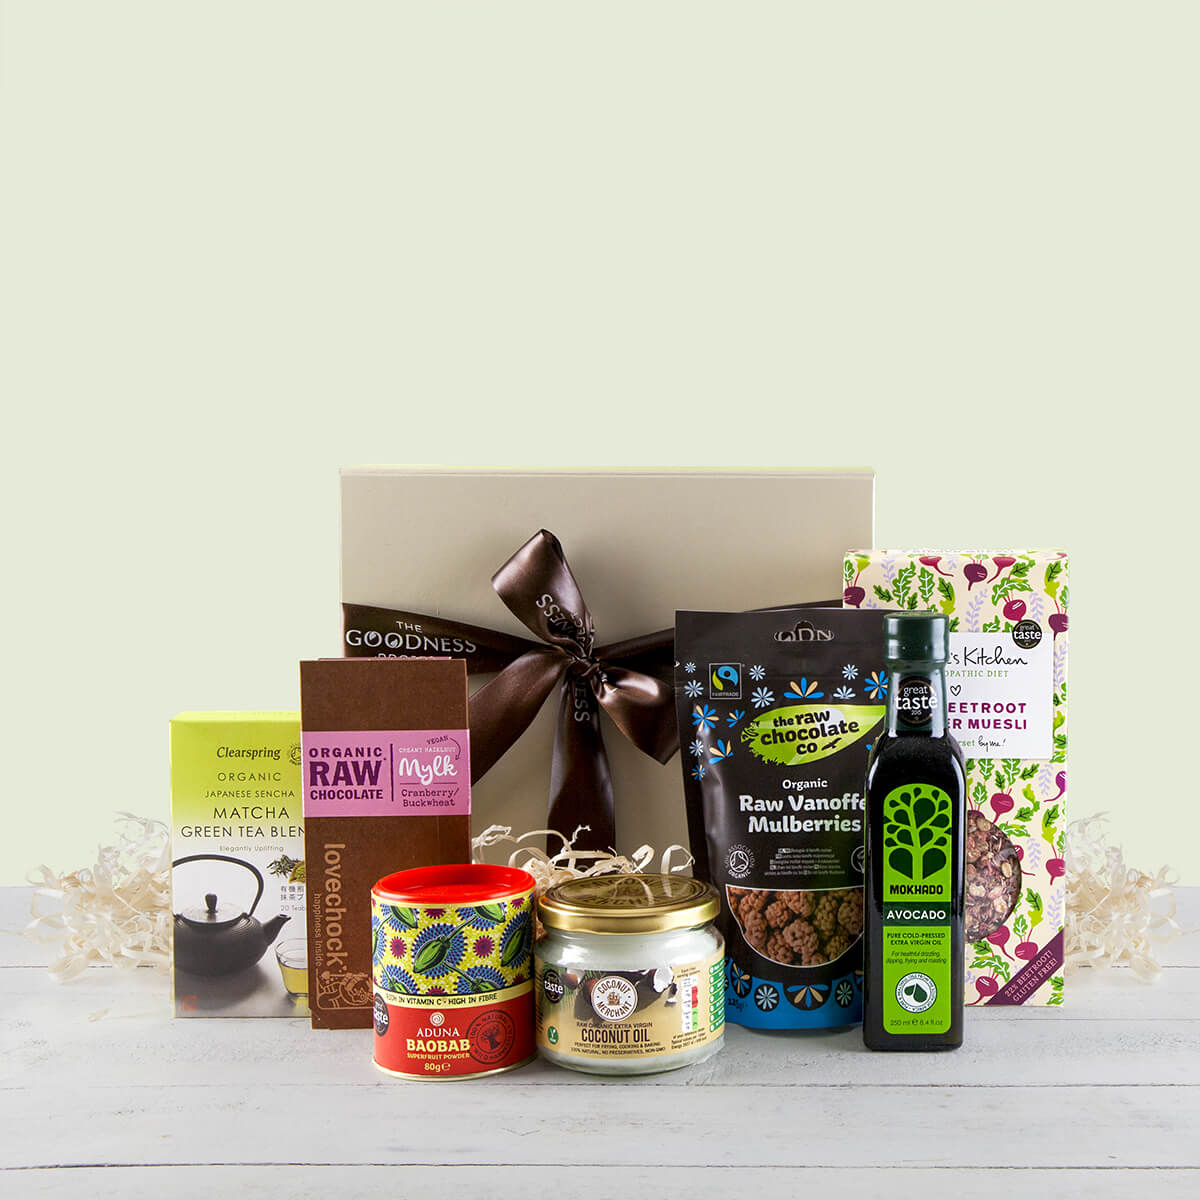 The Goodness Project Gift Boxes